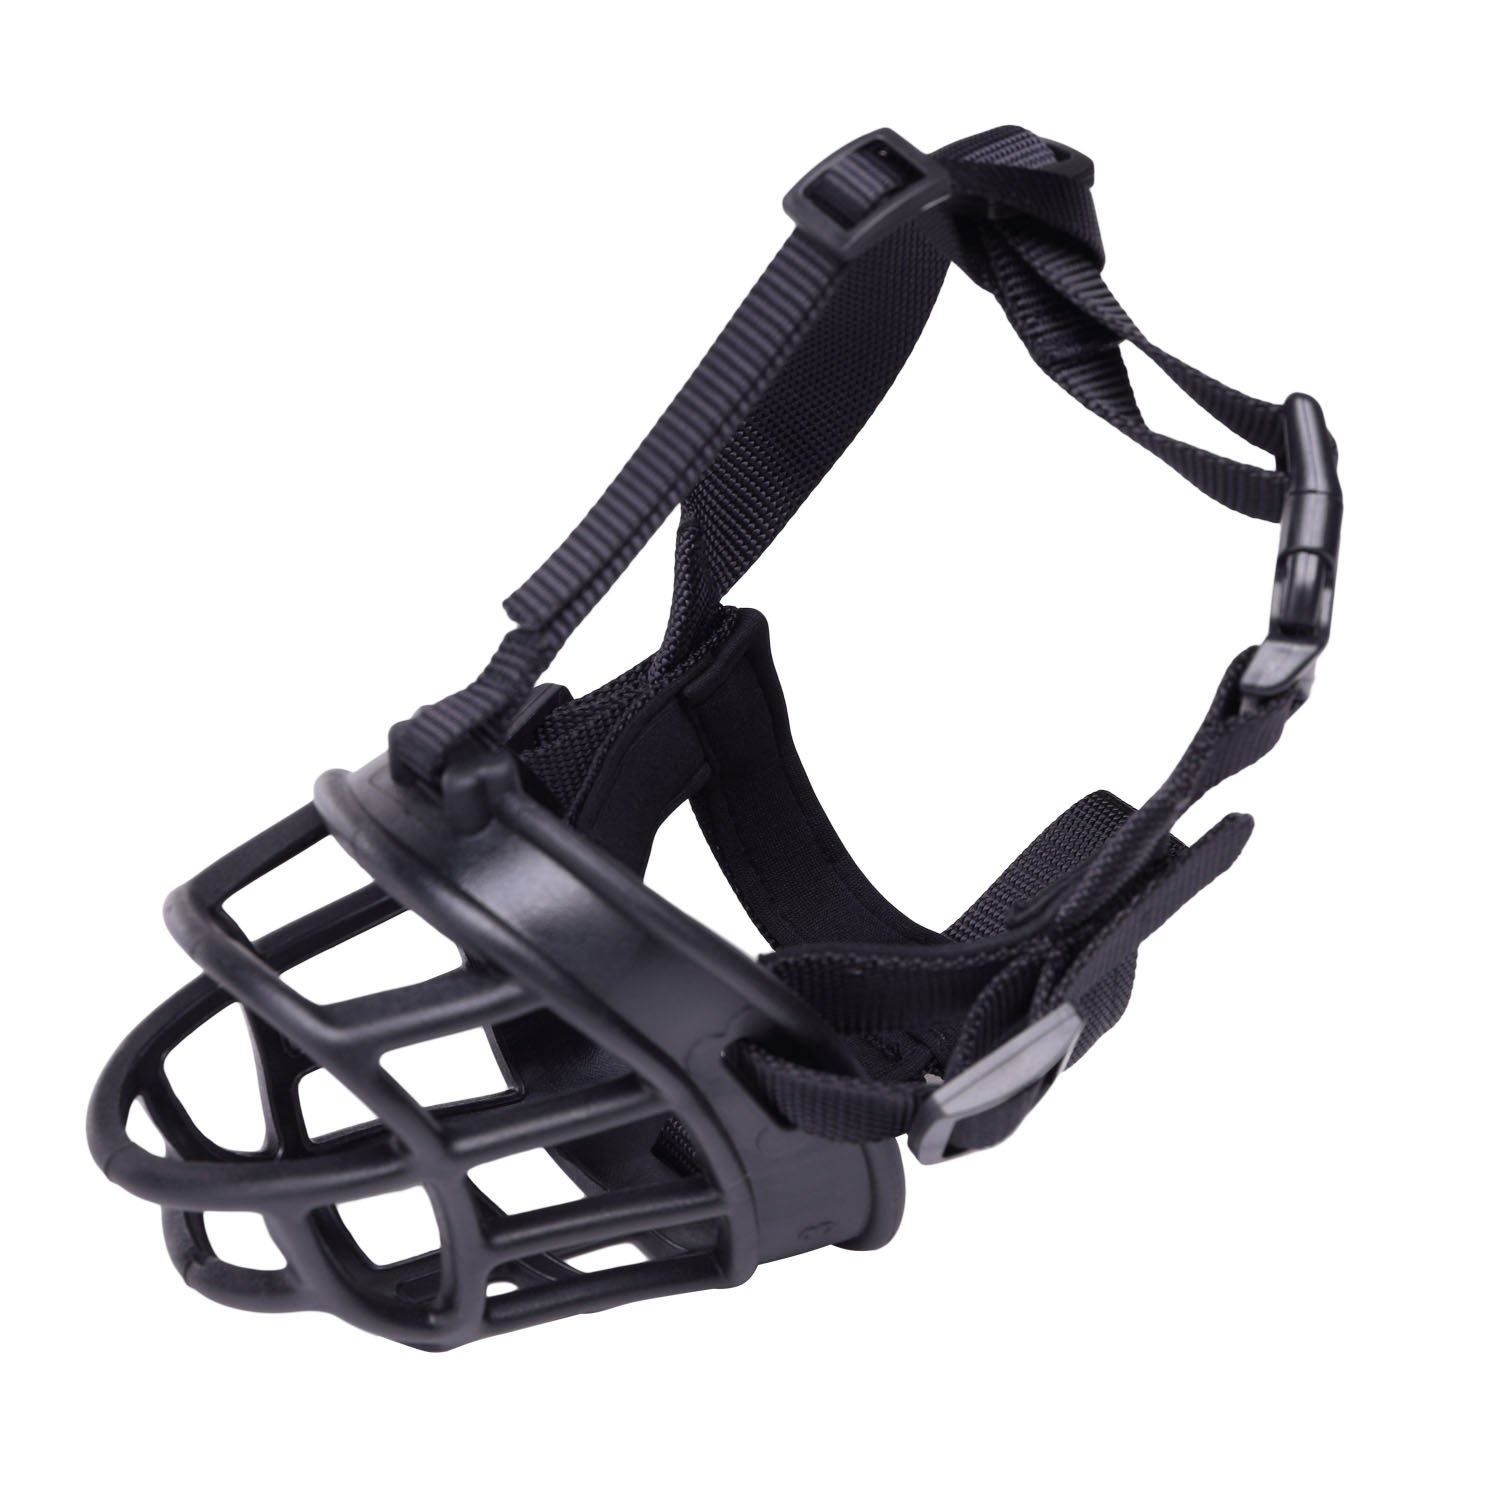 PetAZ Dog Muzzle Soft Rubber Basket Muzzles for All Size Dog, Silicone Dog Basket Muzzles Breathable Adjustable to Prevent Biting, Chewing and Barking (Size 3)